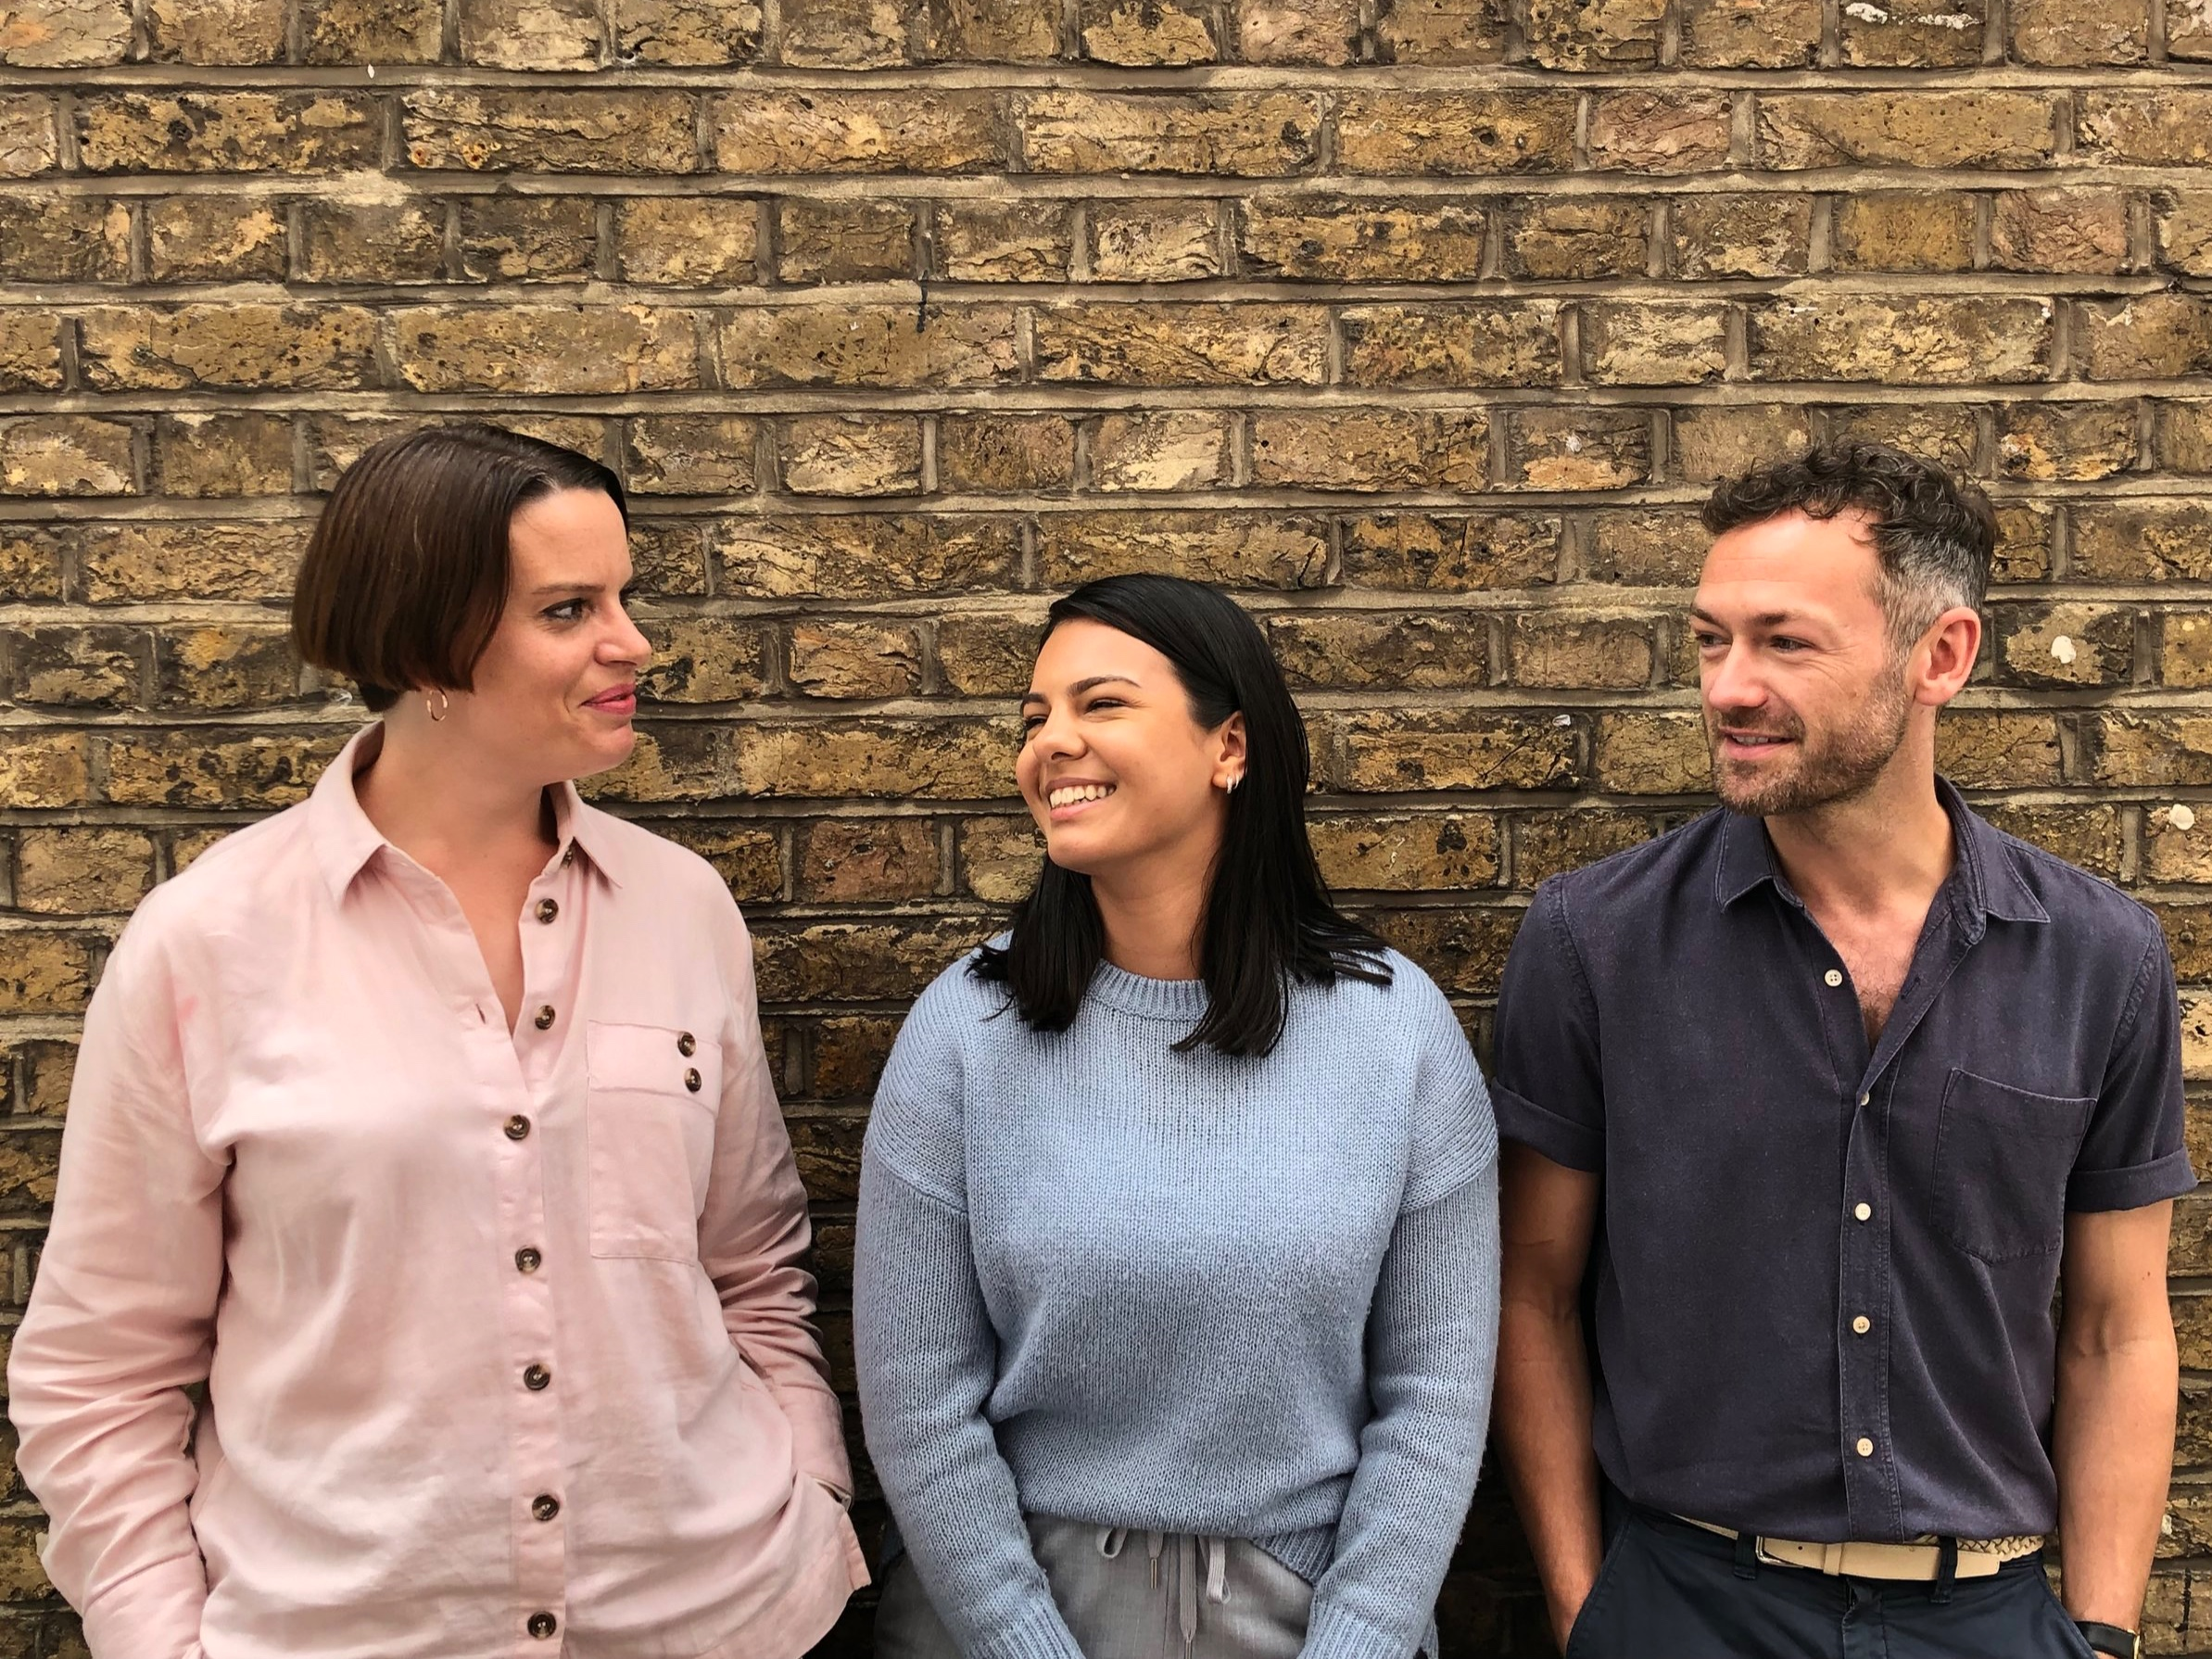 From left to right: Ruth Hoyal, Sara Chandran and Ben Brooks-Dutton (R)